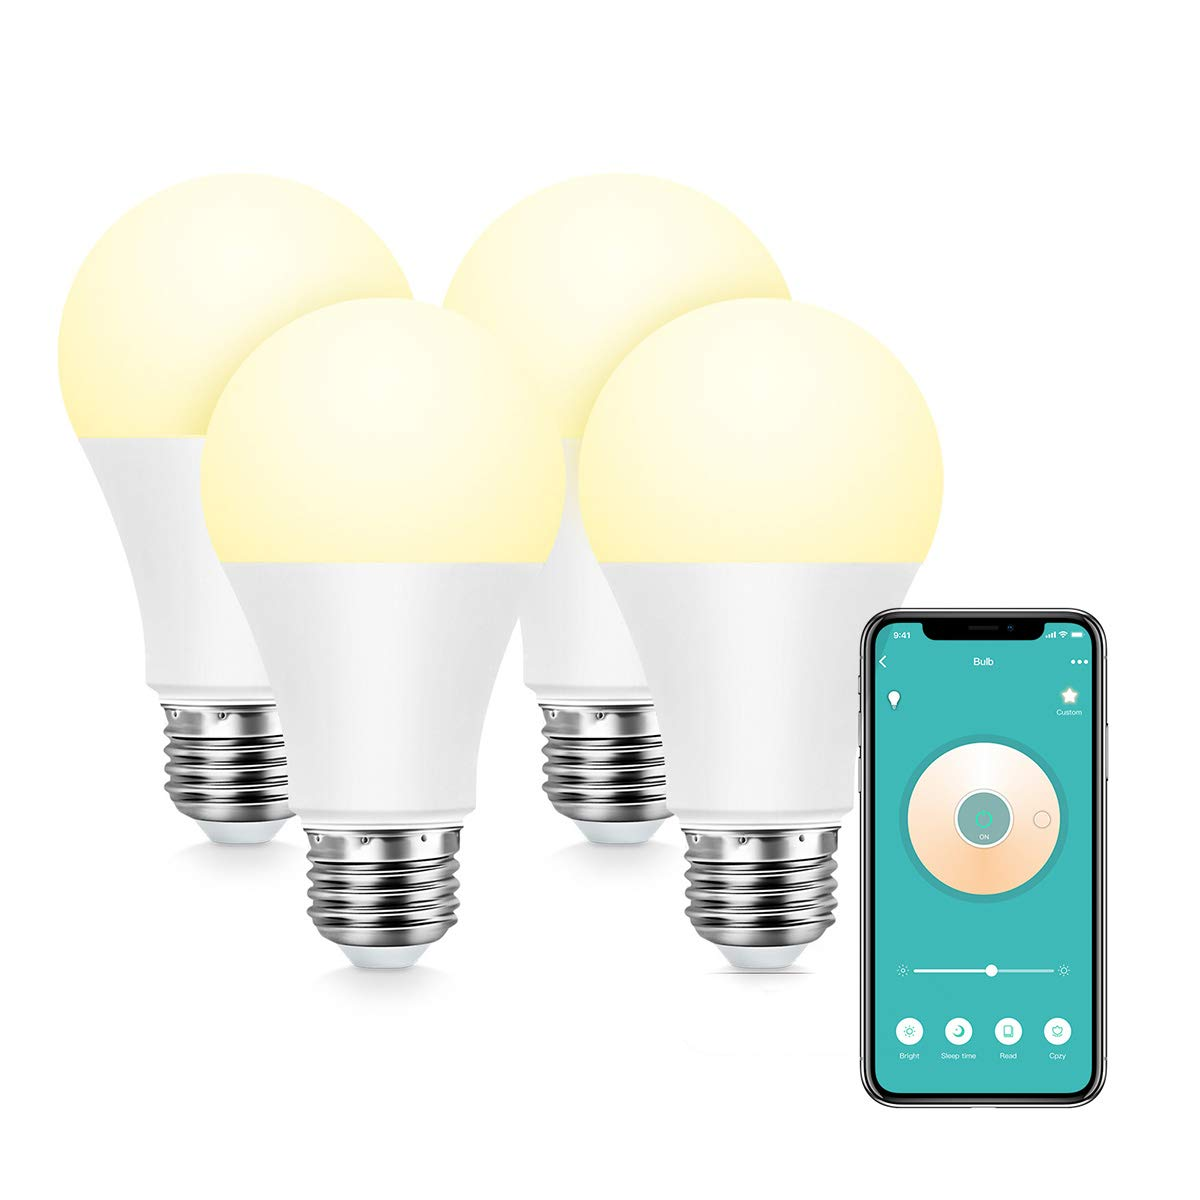 Konke Smart WiFi LED Bulb Dimmable,A19,E26,9W,Works with Alexa,Google  Home,Assistant, No Hub Required,Colour Temp Adjustable,White,4Pack